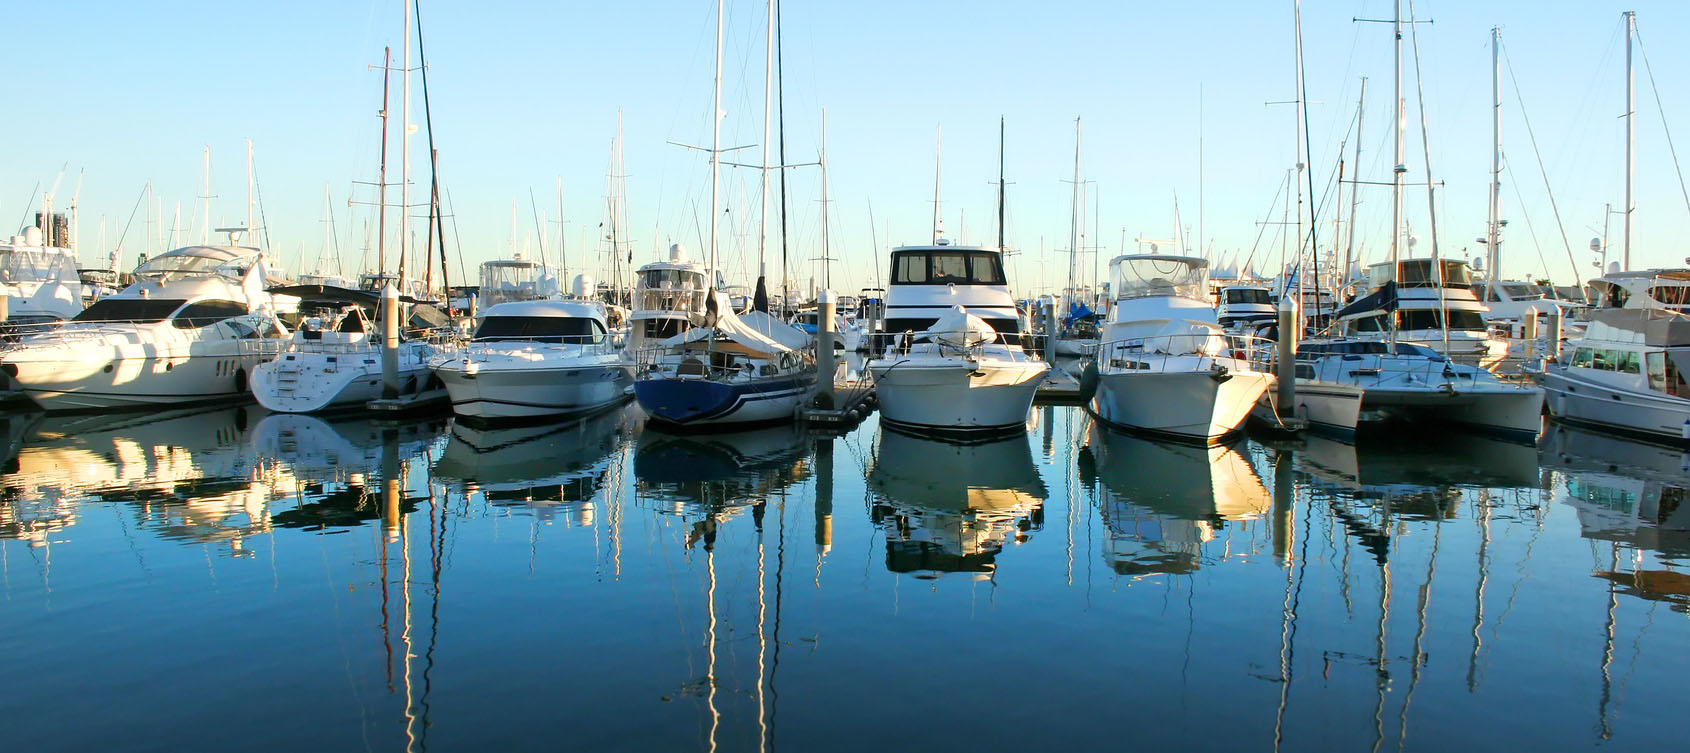 boats-in-marina-engine-parts-sales